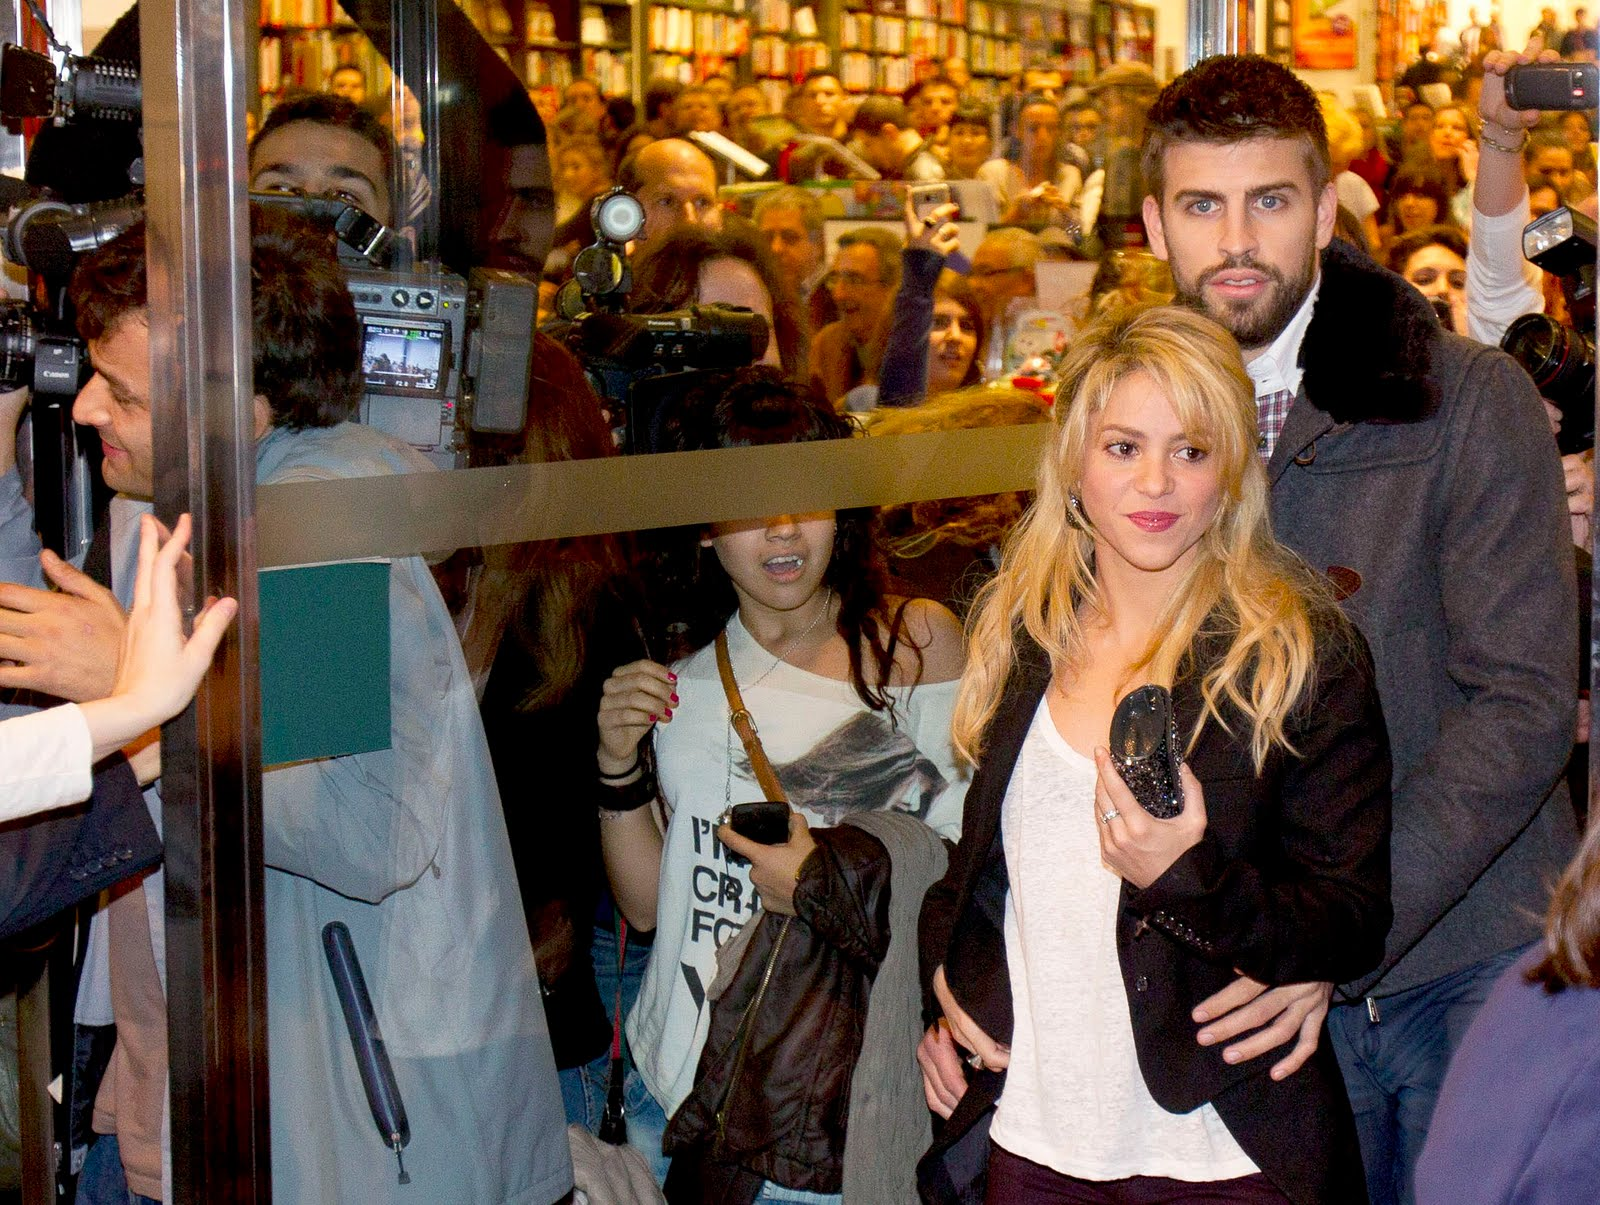 Shakira and Pique. - Page 3 CU-Shakira-and-boyfriend-Dues-Vides-book-release-gerard-pique-27488428-1600-1205